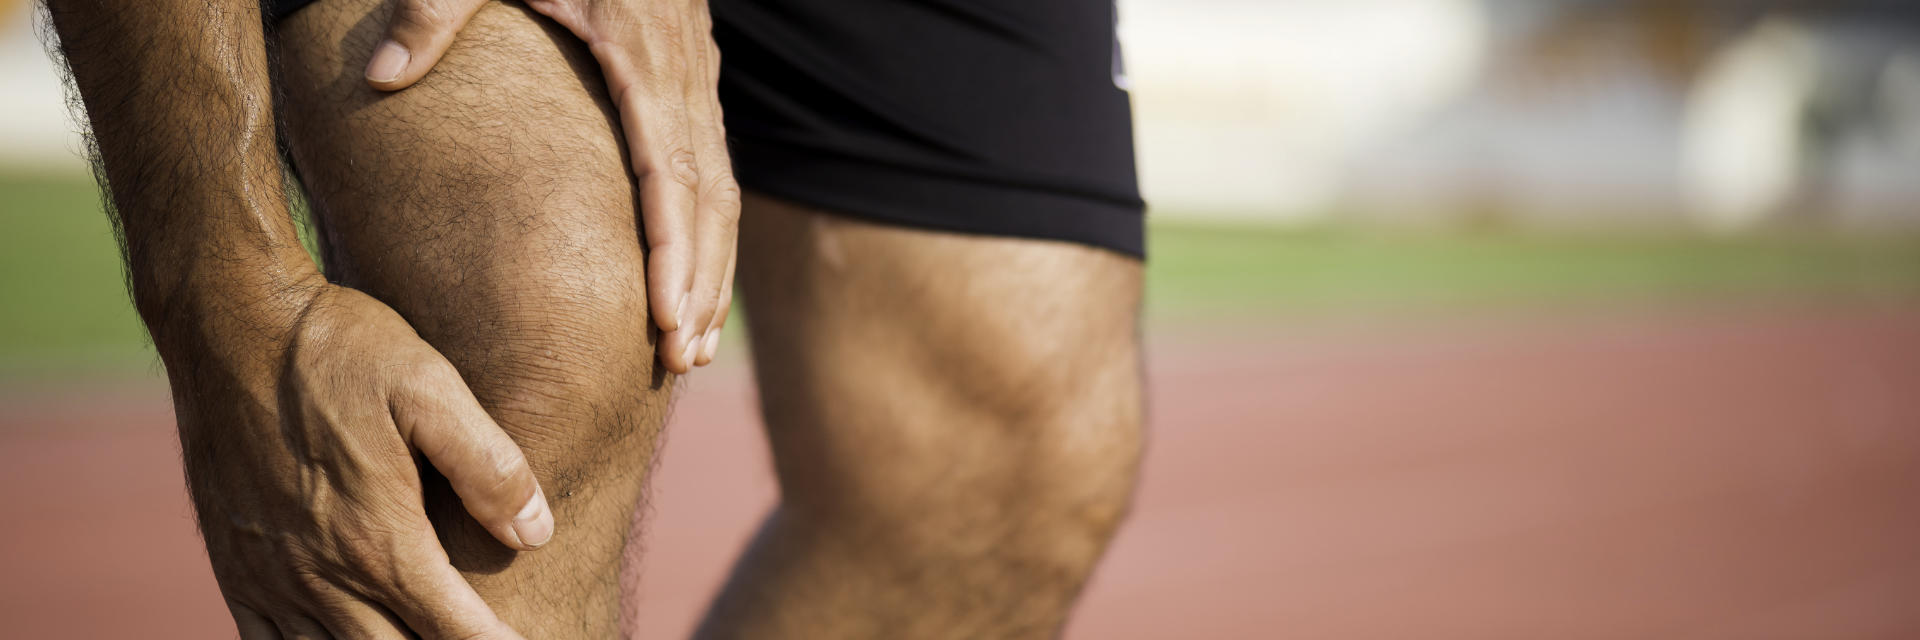 A sportsman with knee pain touching the painful knee area.